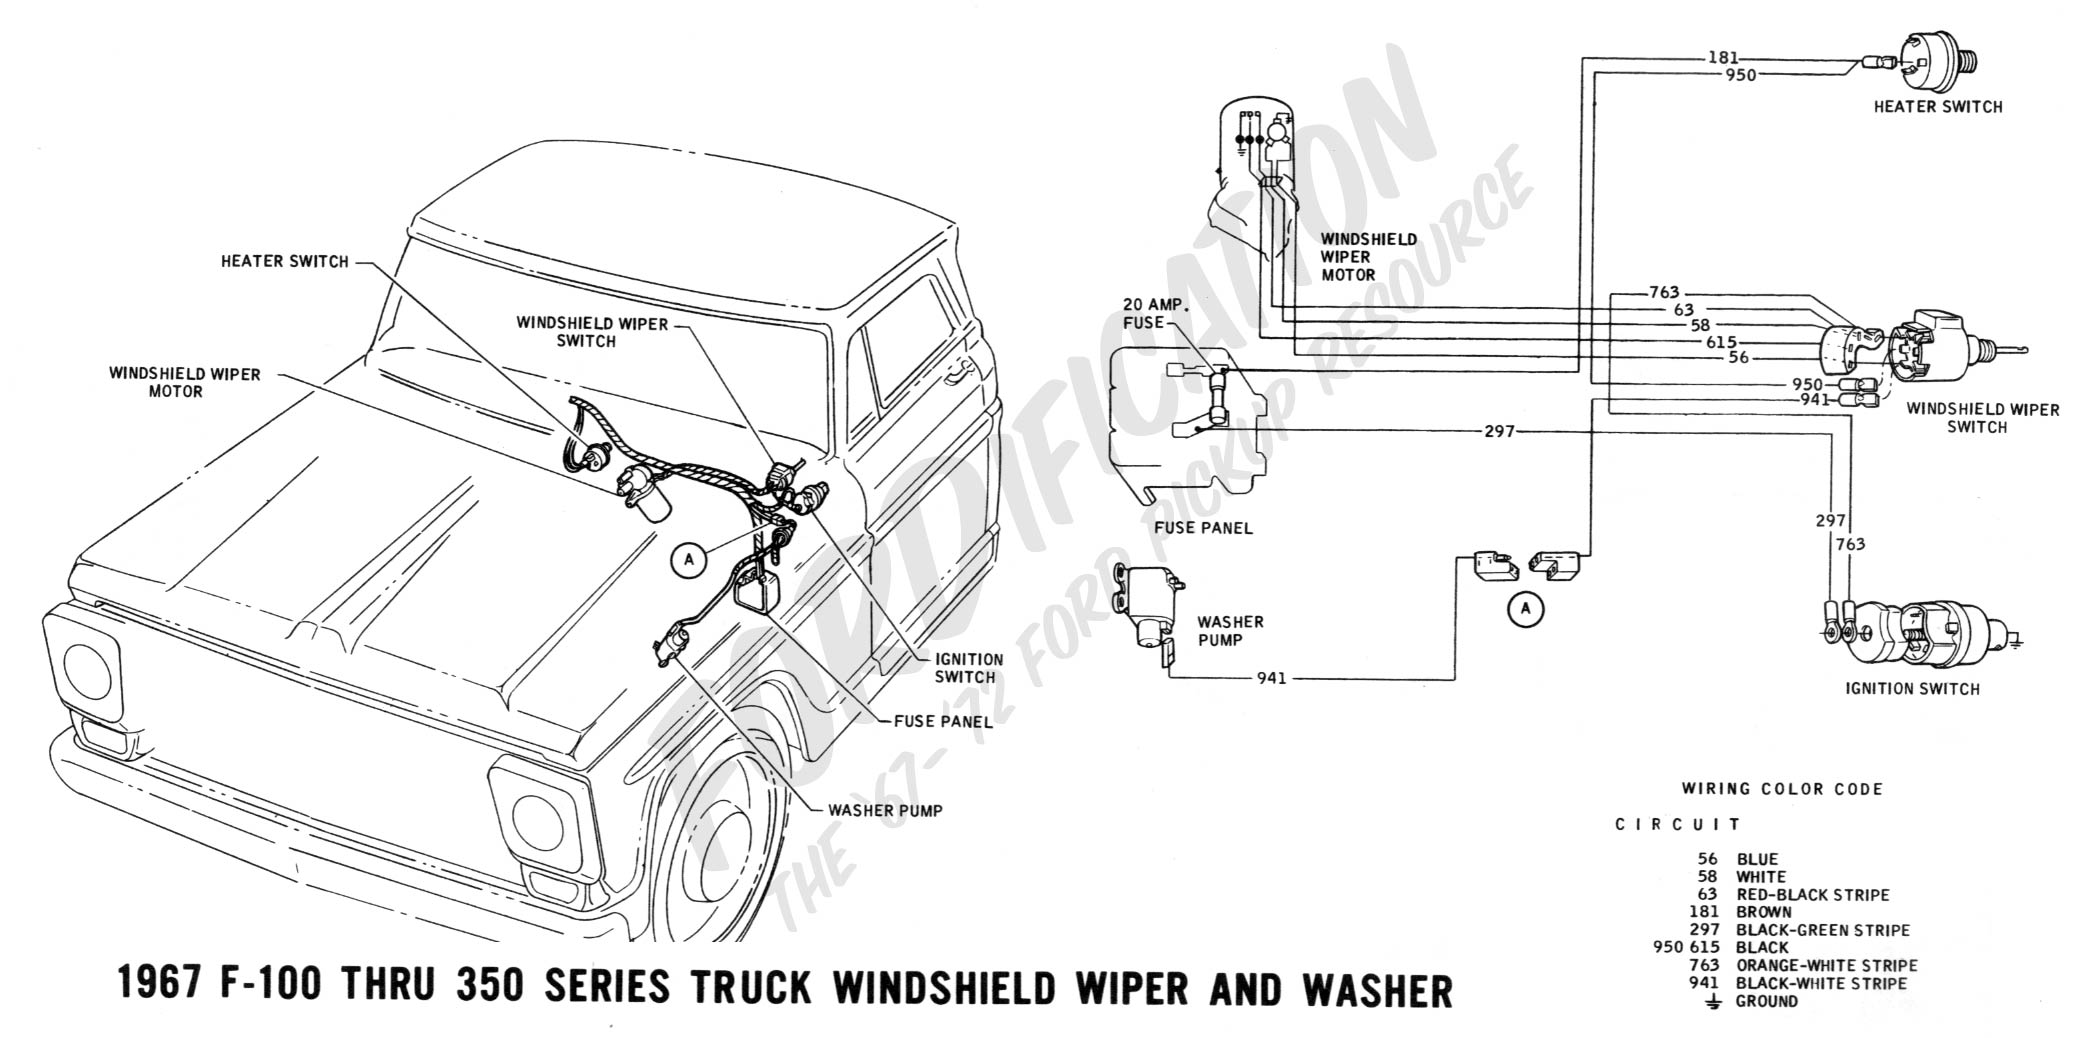 1993 Ford Ranger Xlt Wiring Schematic Wiper Washer Motor